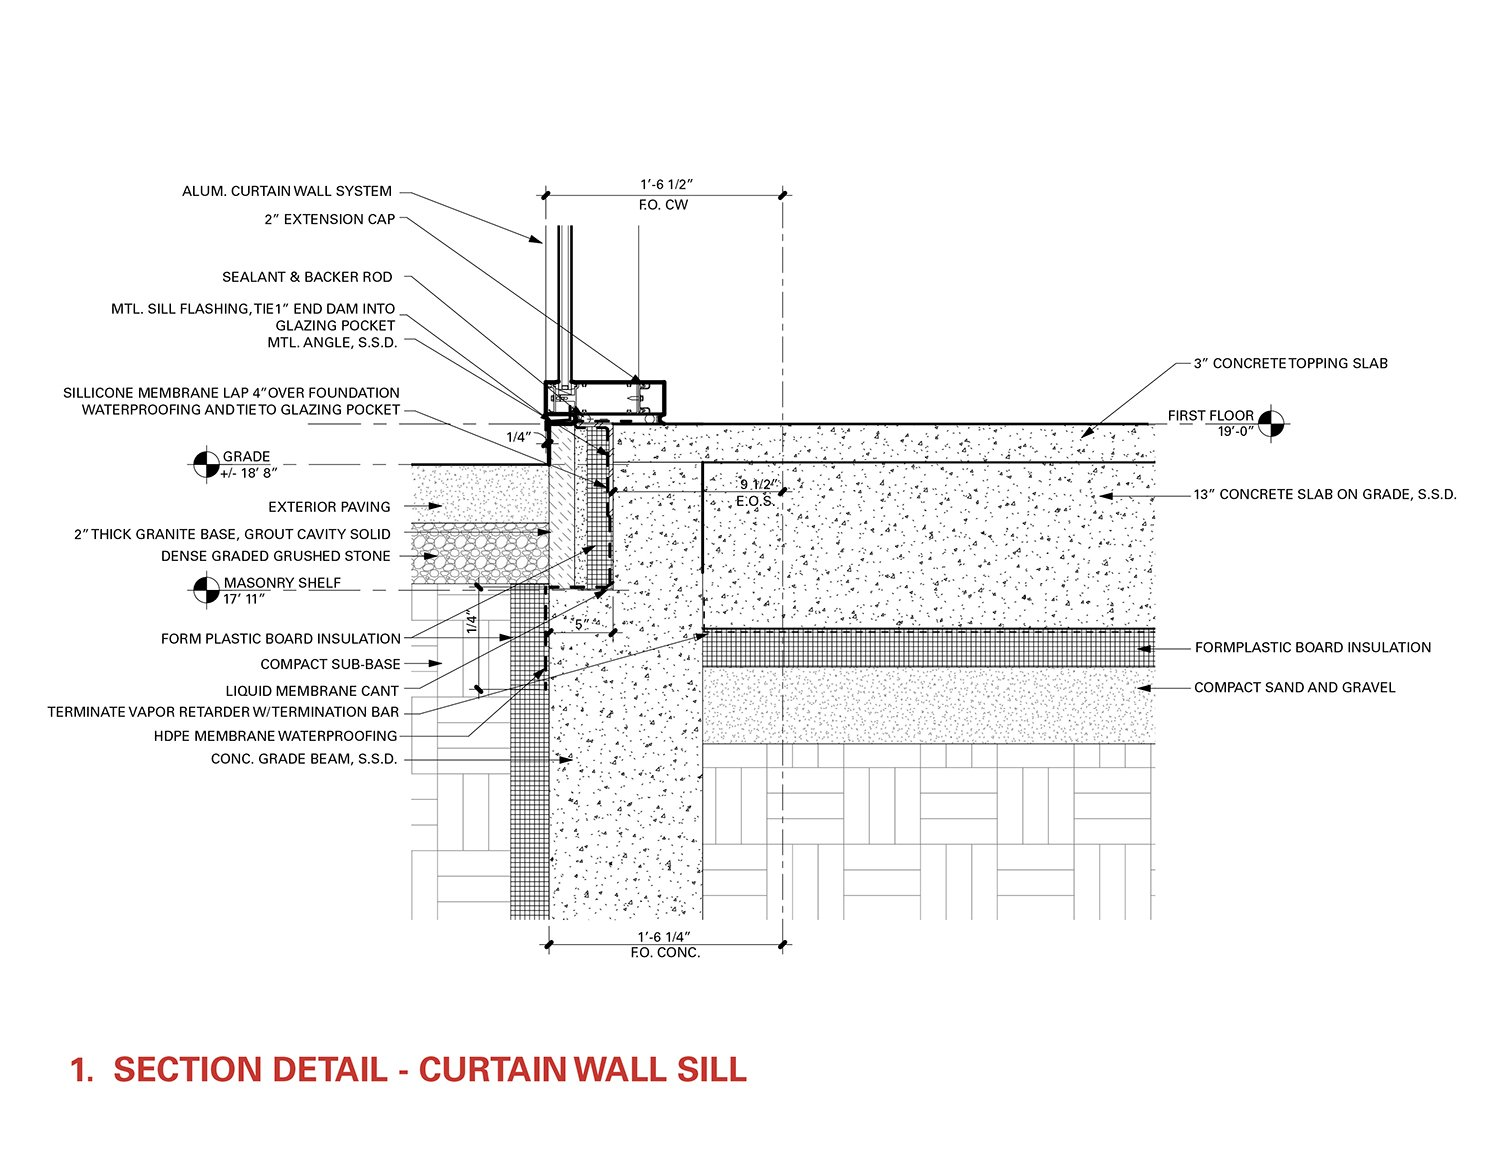 Section Detail - Curtain Wall Sill Leers Weinzapfel Associates}